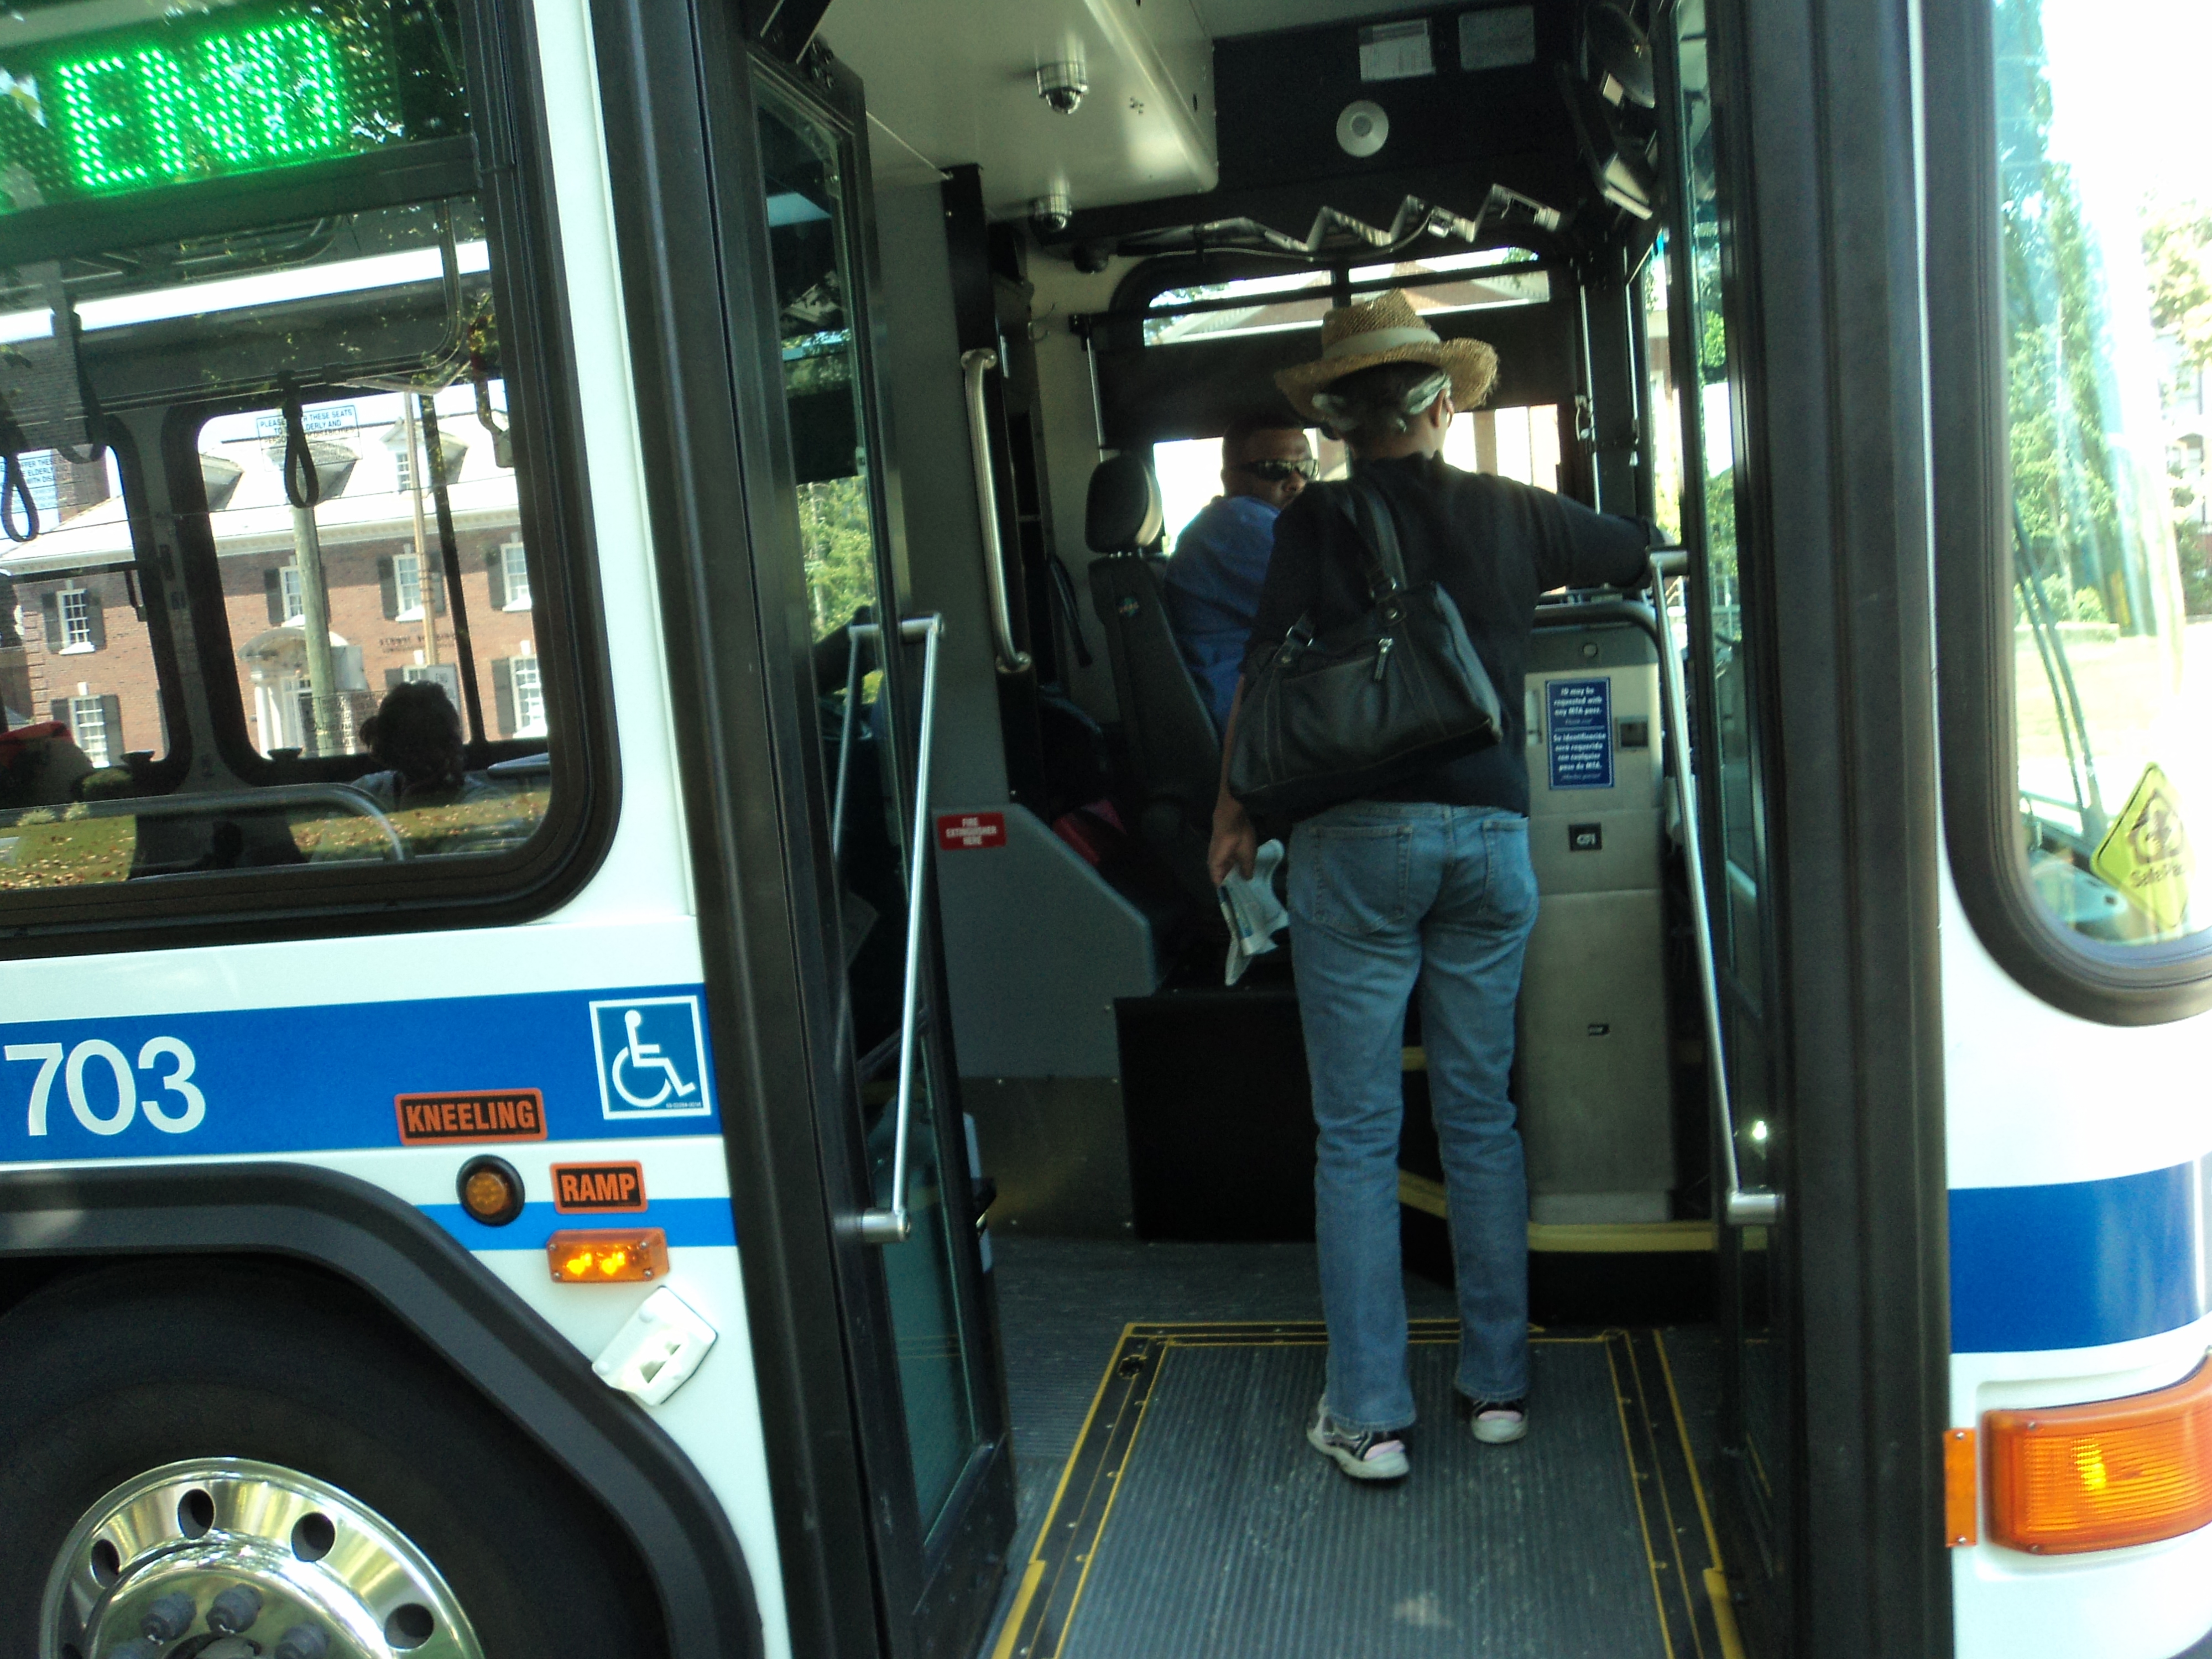 Free New Year's Bus Rides in Metro Courtesy of Miller Lite